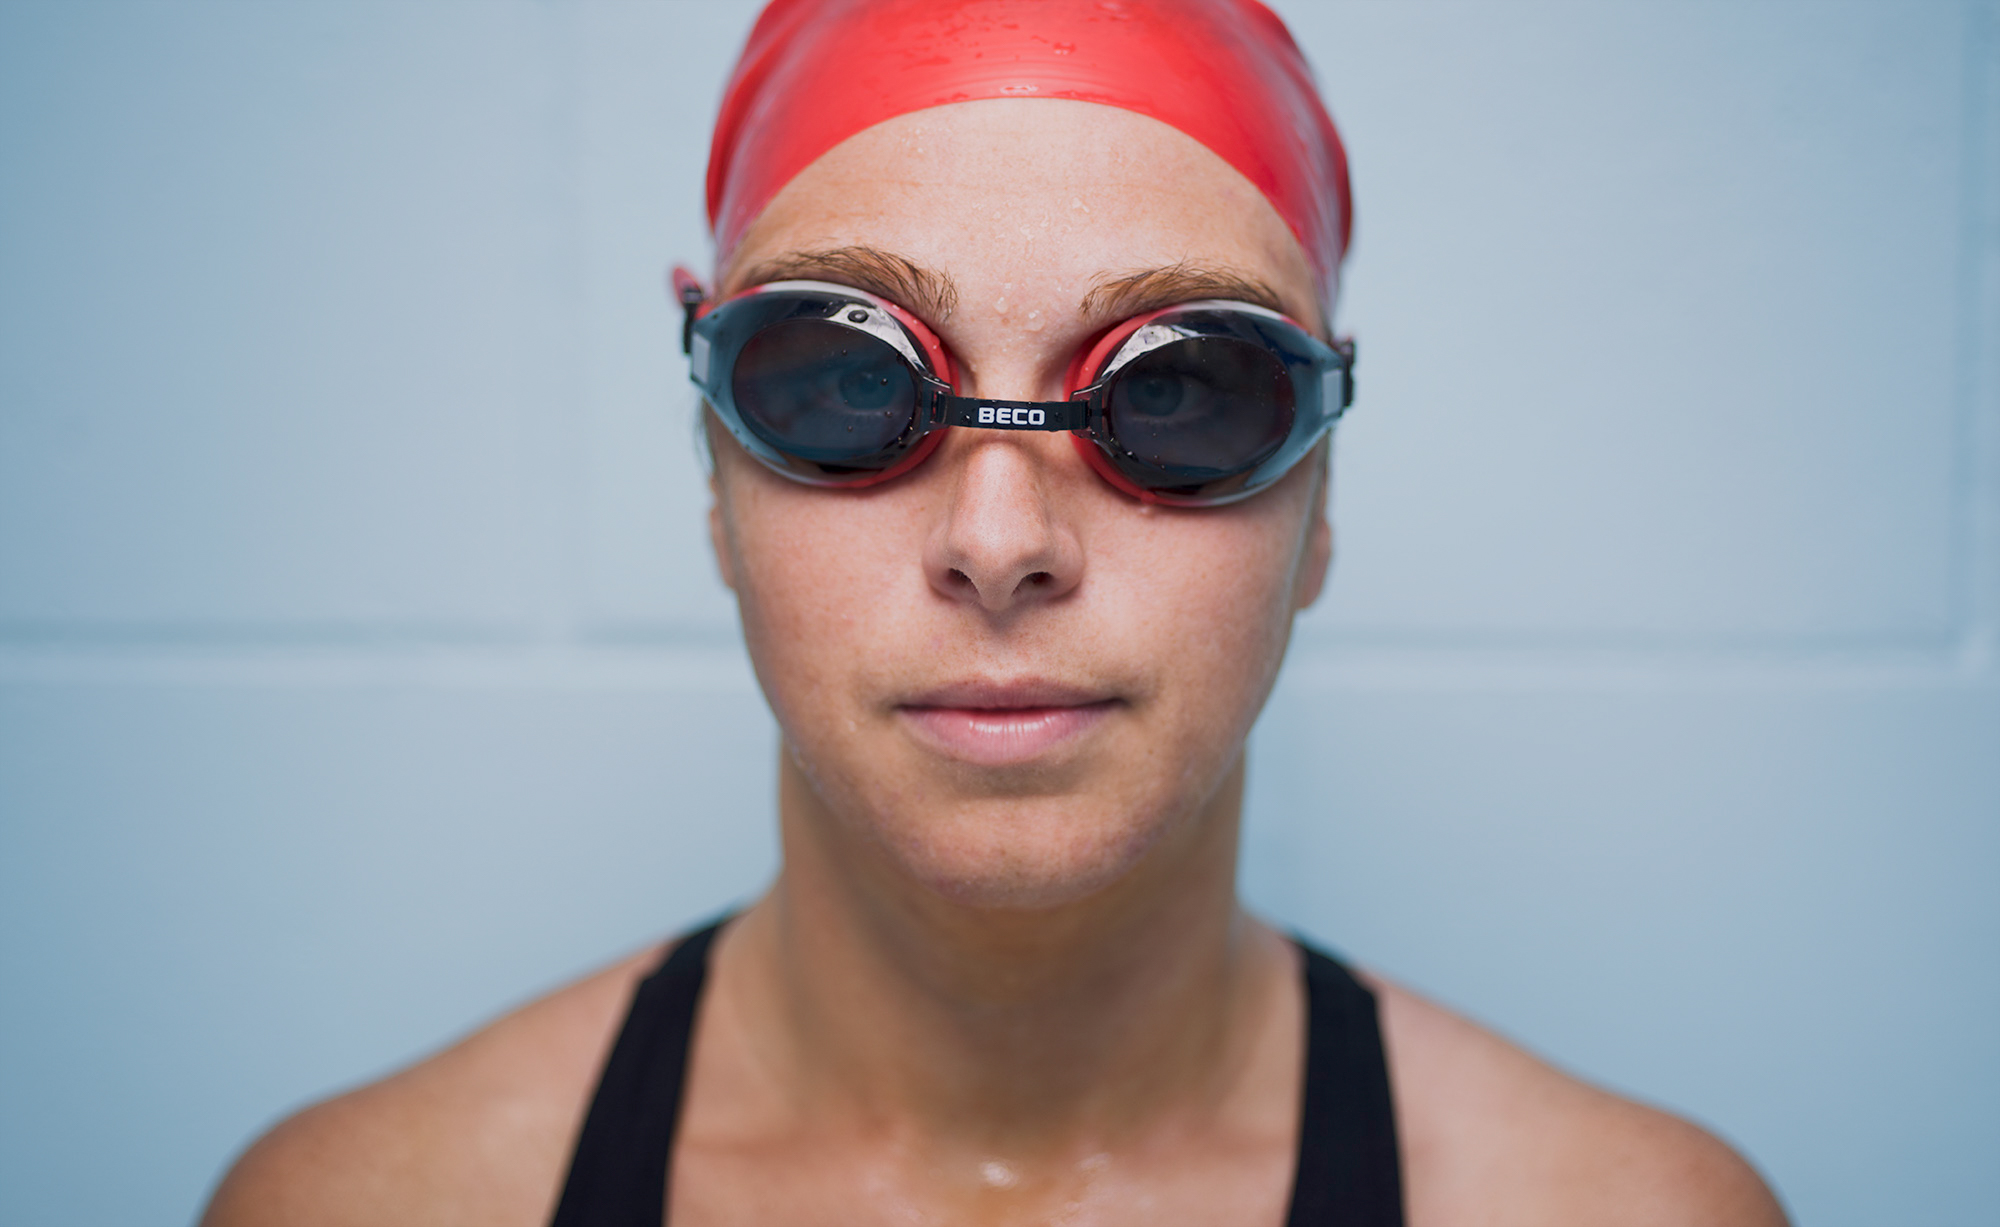 Swimmer portrait in cap and goggles